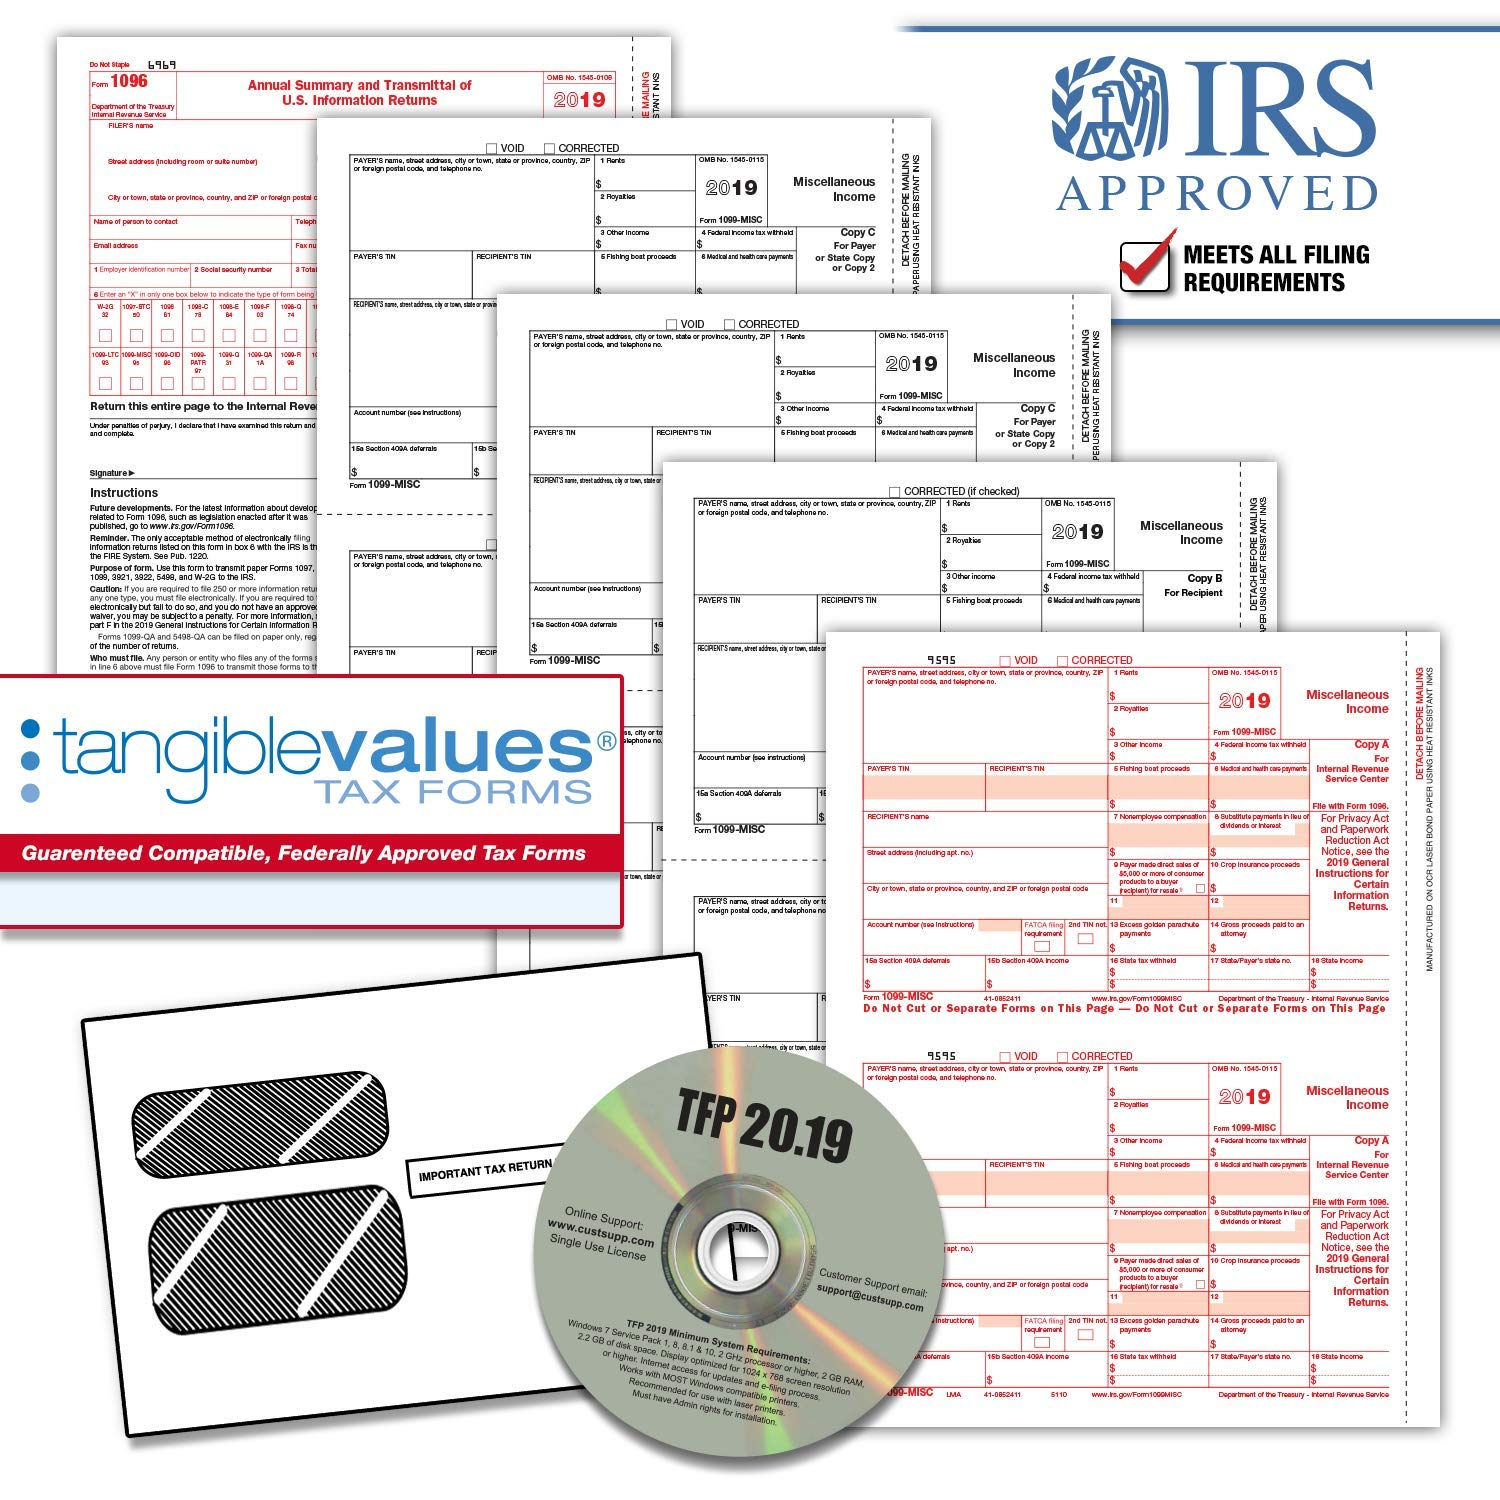 Tangible Values 1099 Misc Laser Forms (4-Part) Kit with Envelopes Plus TFP Software for 25 Individuals/Suppliers (2019) by Tangible Values Business Solutions